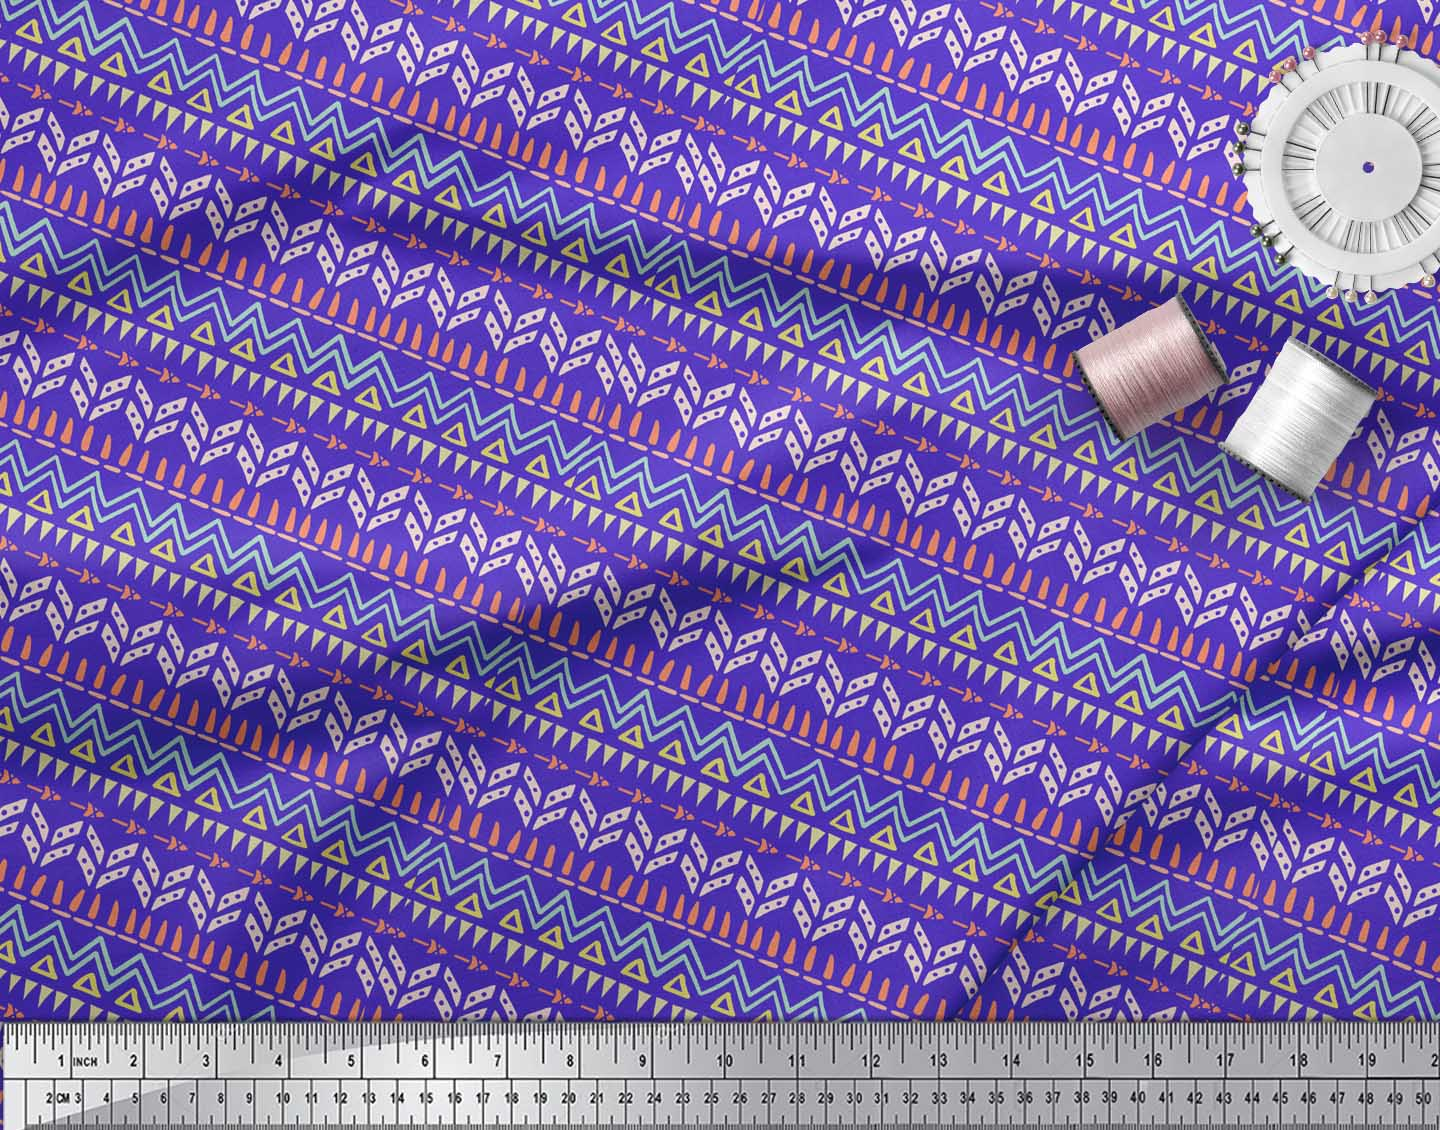 Soimoi-Blue-Cotton-Poplin-Fabric-Tent-Tribal-Fabric-Prints-By-metre-PFW thumbnail 3